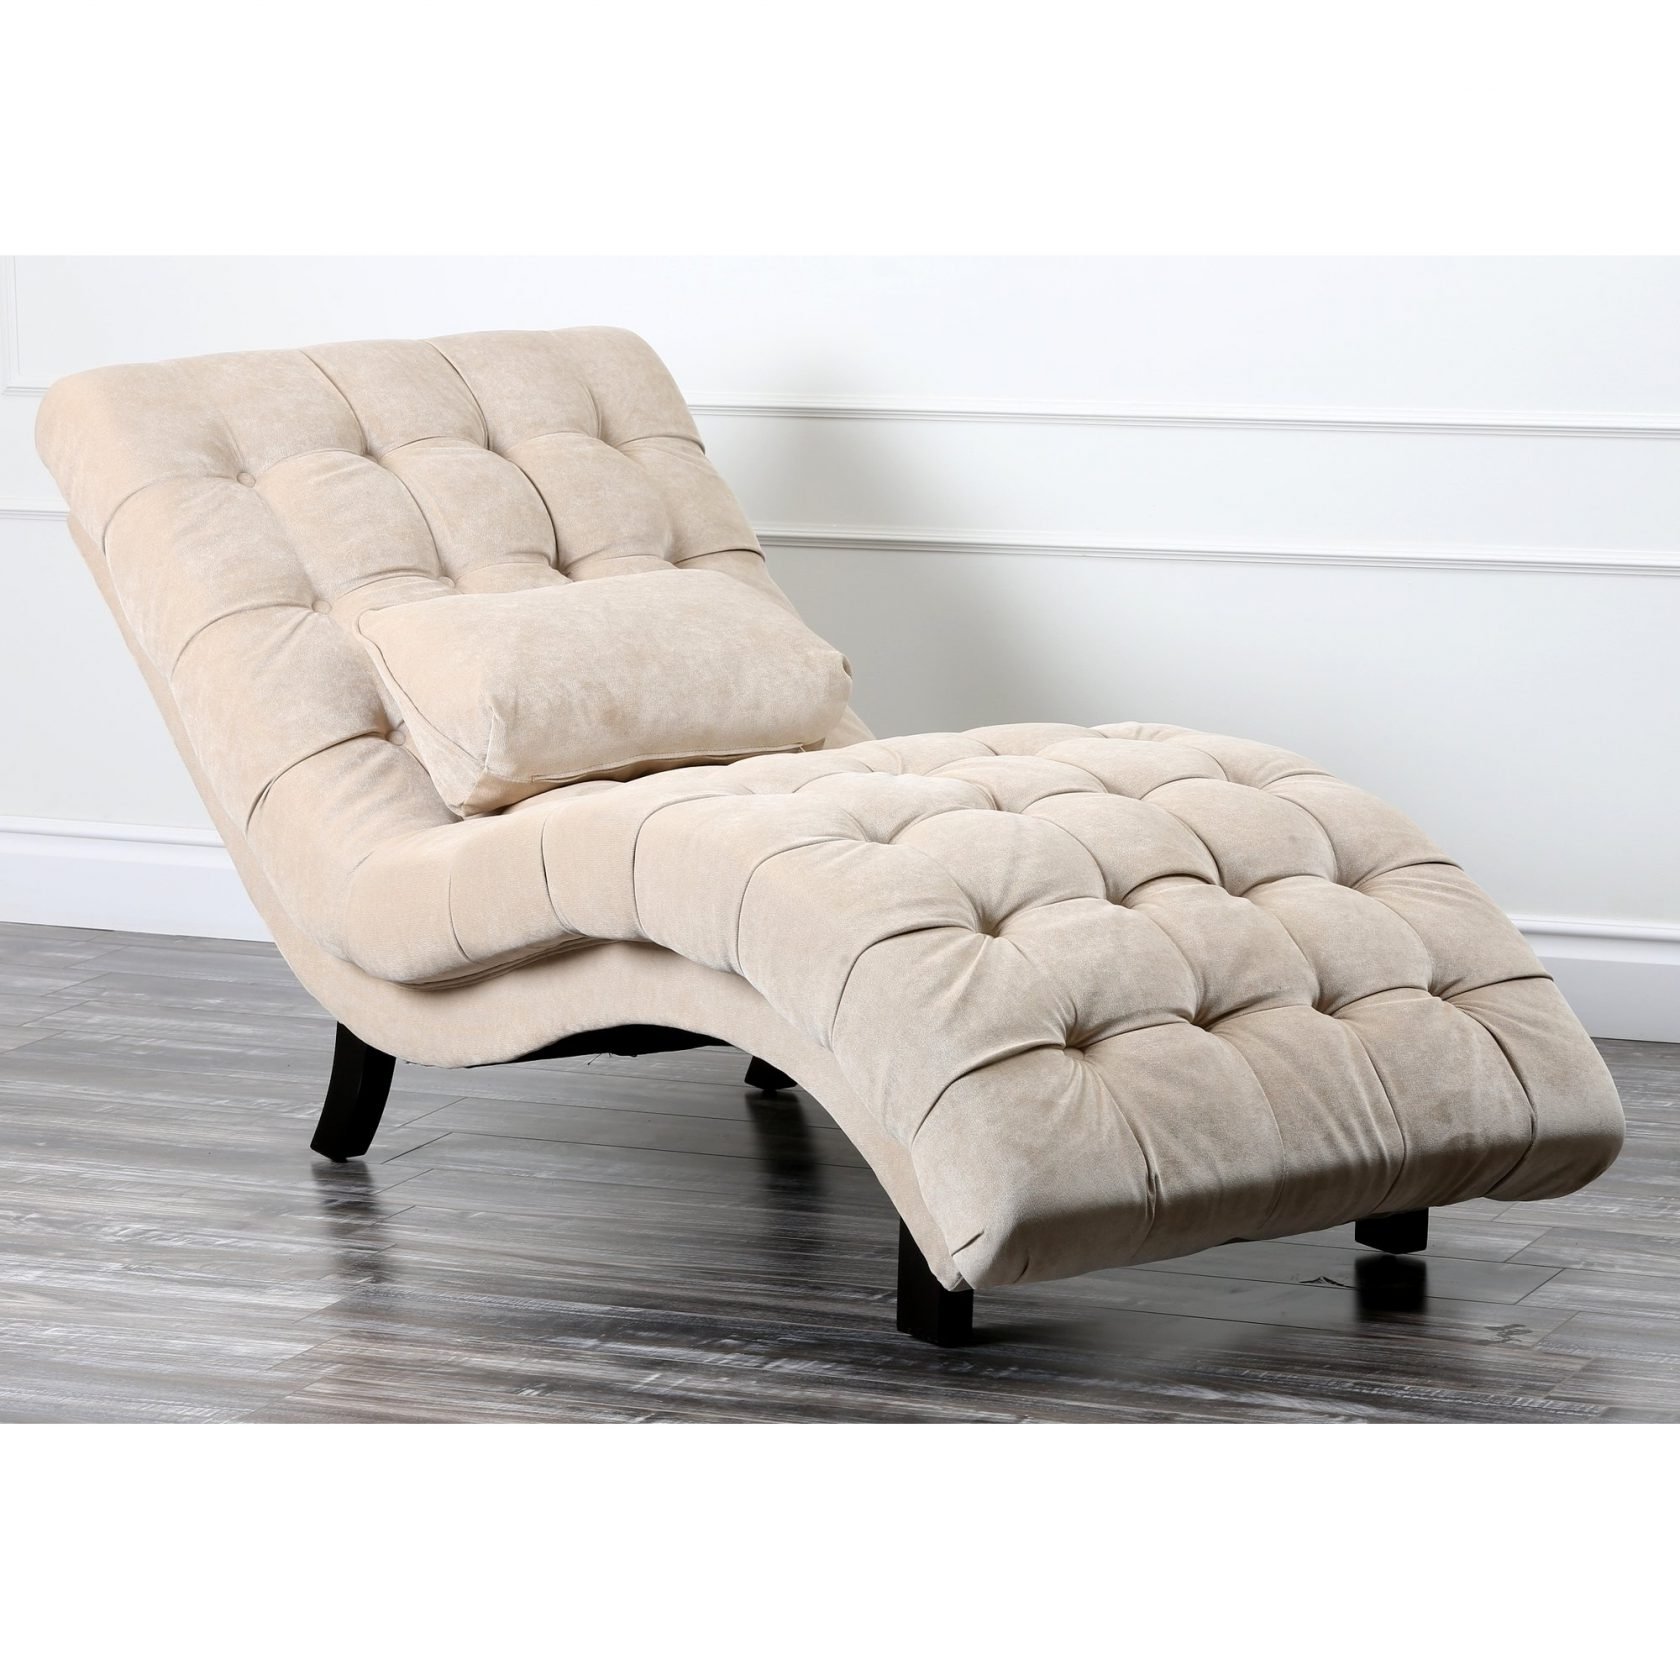 Well Known Fascinating Bedroom Chaise Lounge Chairs Fantastic Photos Picture In Futon Chaise Lounges (View 14 of 15)